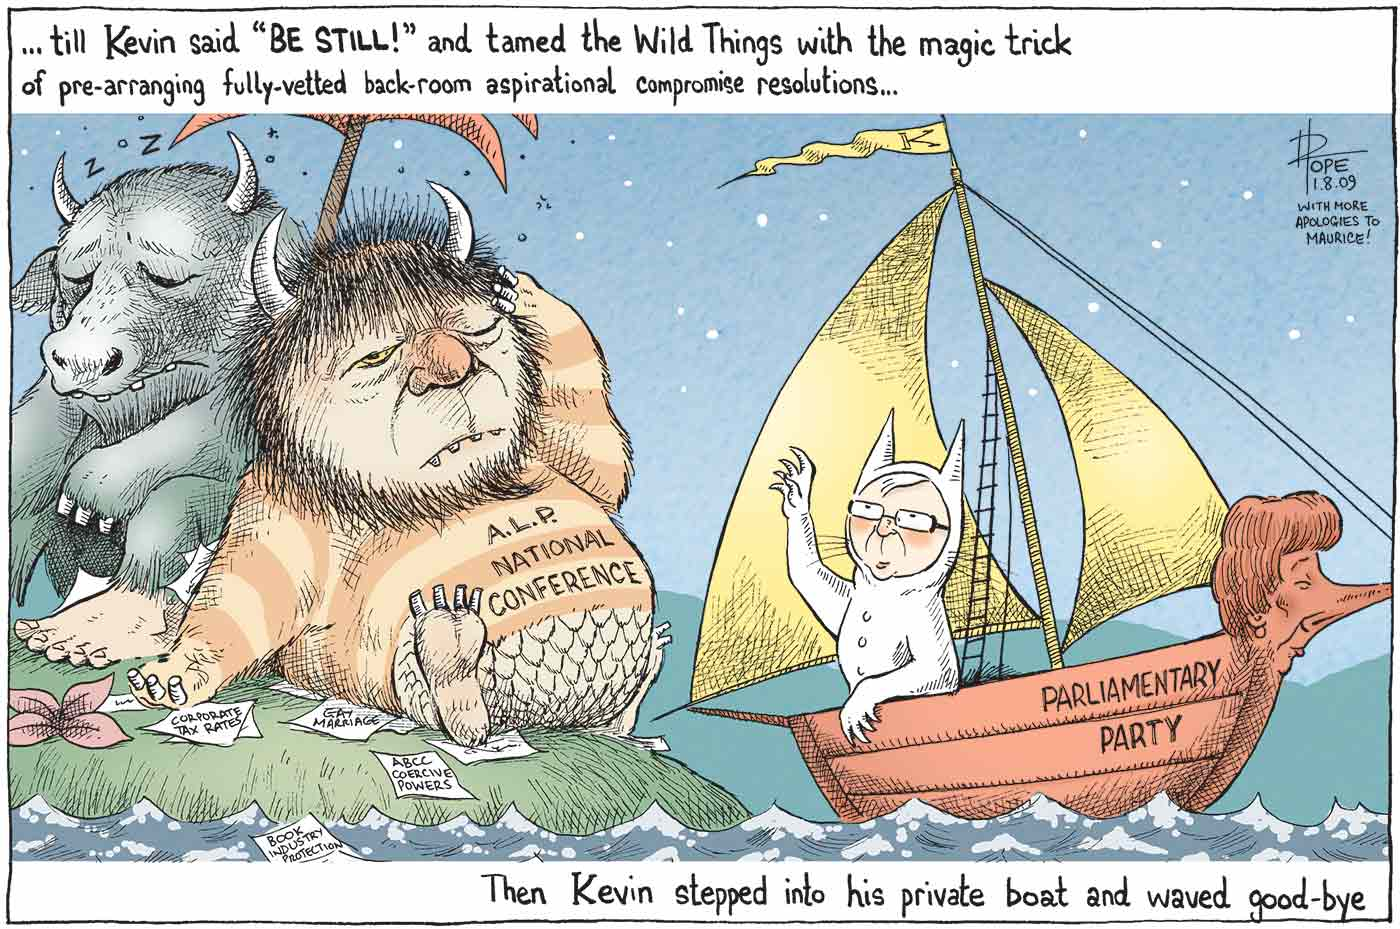 "A colour cartoon depicting characters from Maurice Sendak's 'Where the Wild Things Are'. Kevin Rudd is Max, in a white animal suit with tall pointed ears. He is in a sailing boat with 'Parliamentary Party' on the side. Julia Gillard is the figurehead of the boat. Mr Rudd is sailing away from an island upon which sit two hairy monsters with horns. The monsters are dozing under a palm tree amid discarded papers bearing terms including 'gay marriage', 'corporate tax rates' and 'book industry protection'. One of them has 'A.L.P. National Conference' written on its front. At the top of the cartoon is written ' ... till Kevin said ""BE STILL!"" and tamed the Wild Things with the magic trick of pre-arranging fully-vetted back-room aspirational compromise resolutions ...'. At the bottom of the cartoon is written 'Then Kevin stepped into his private boat and waved goodbye'.  - click to view larger image"